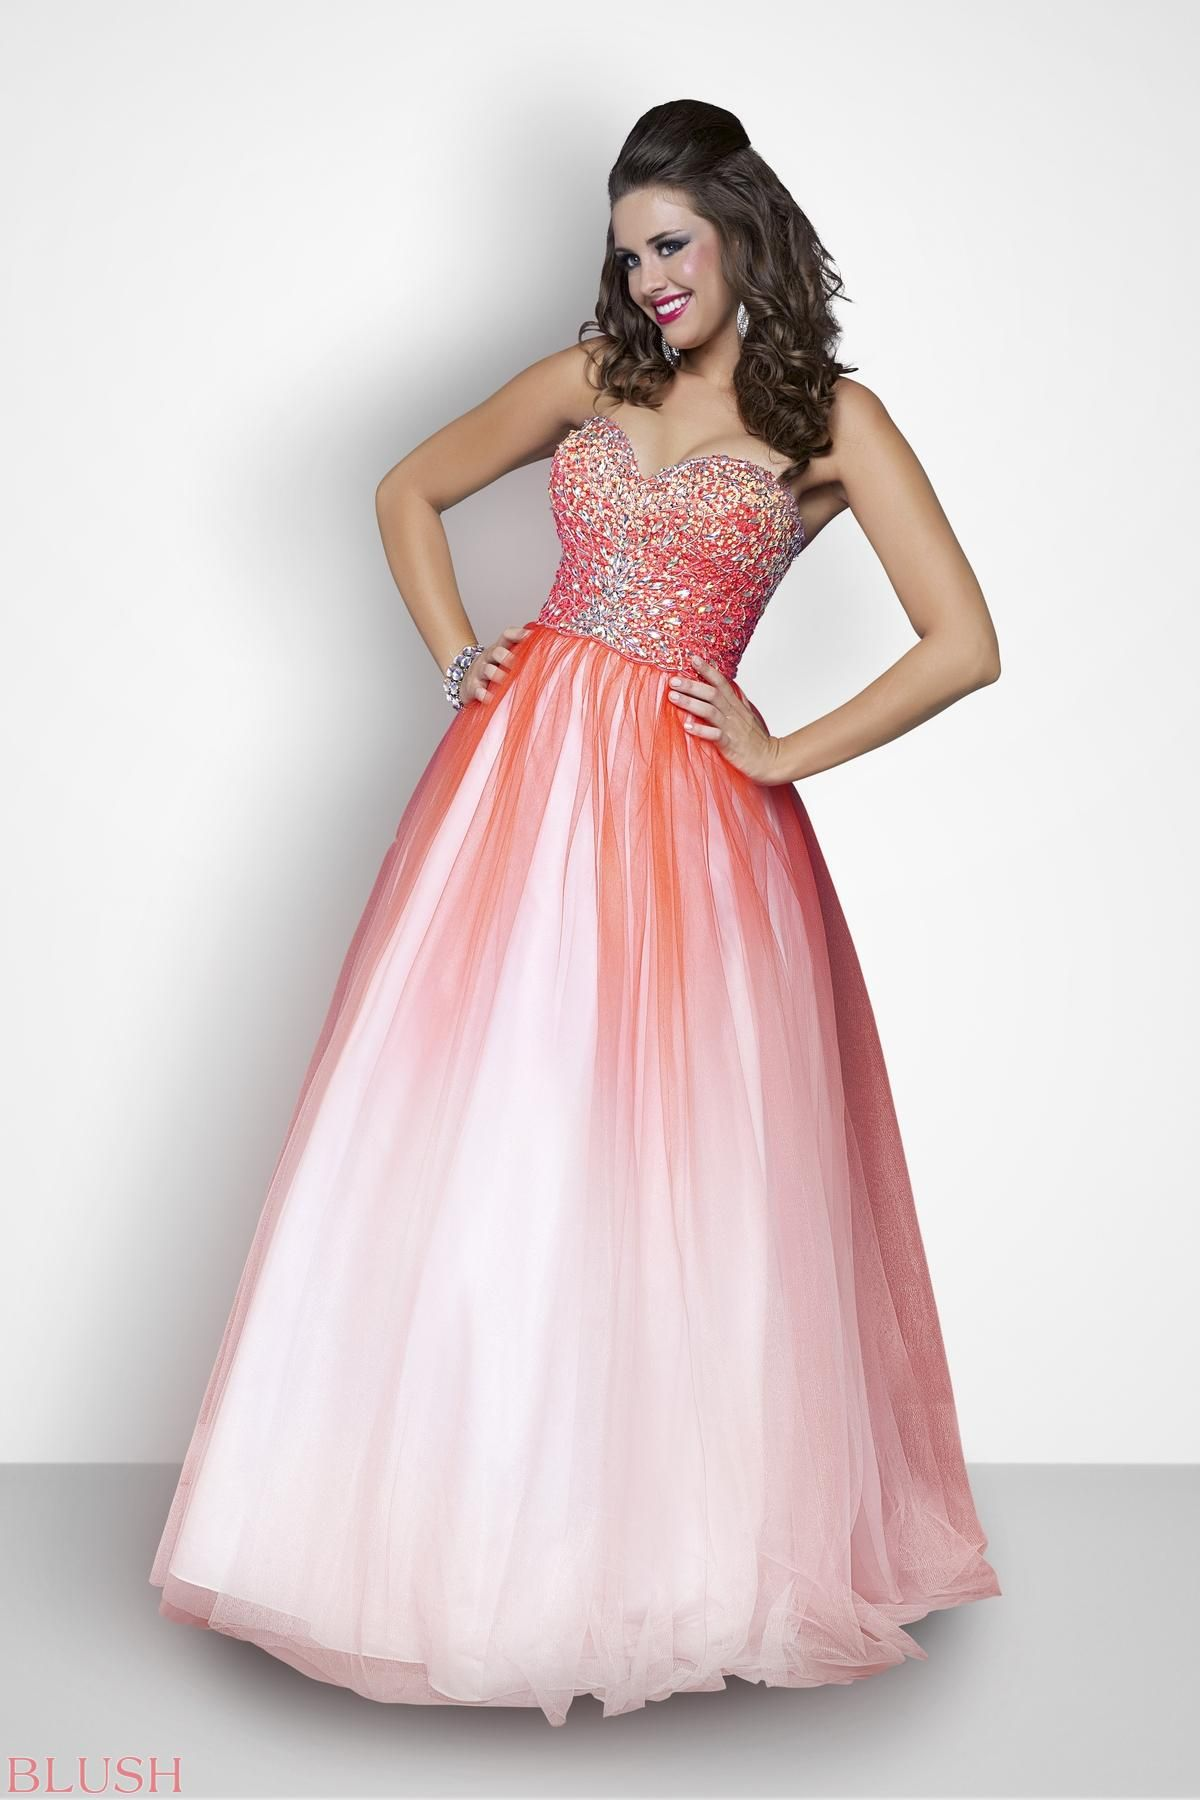 Pink by Blush Prom Plus Style 111W #IPAProm | fiesta | Pinterest ...